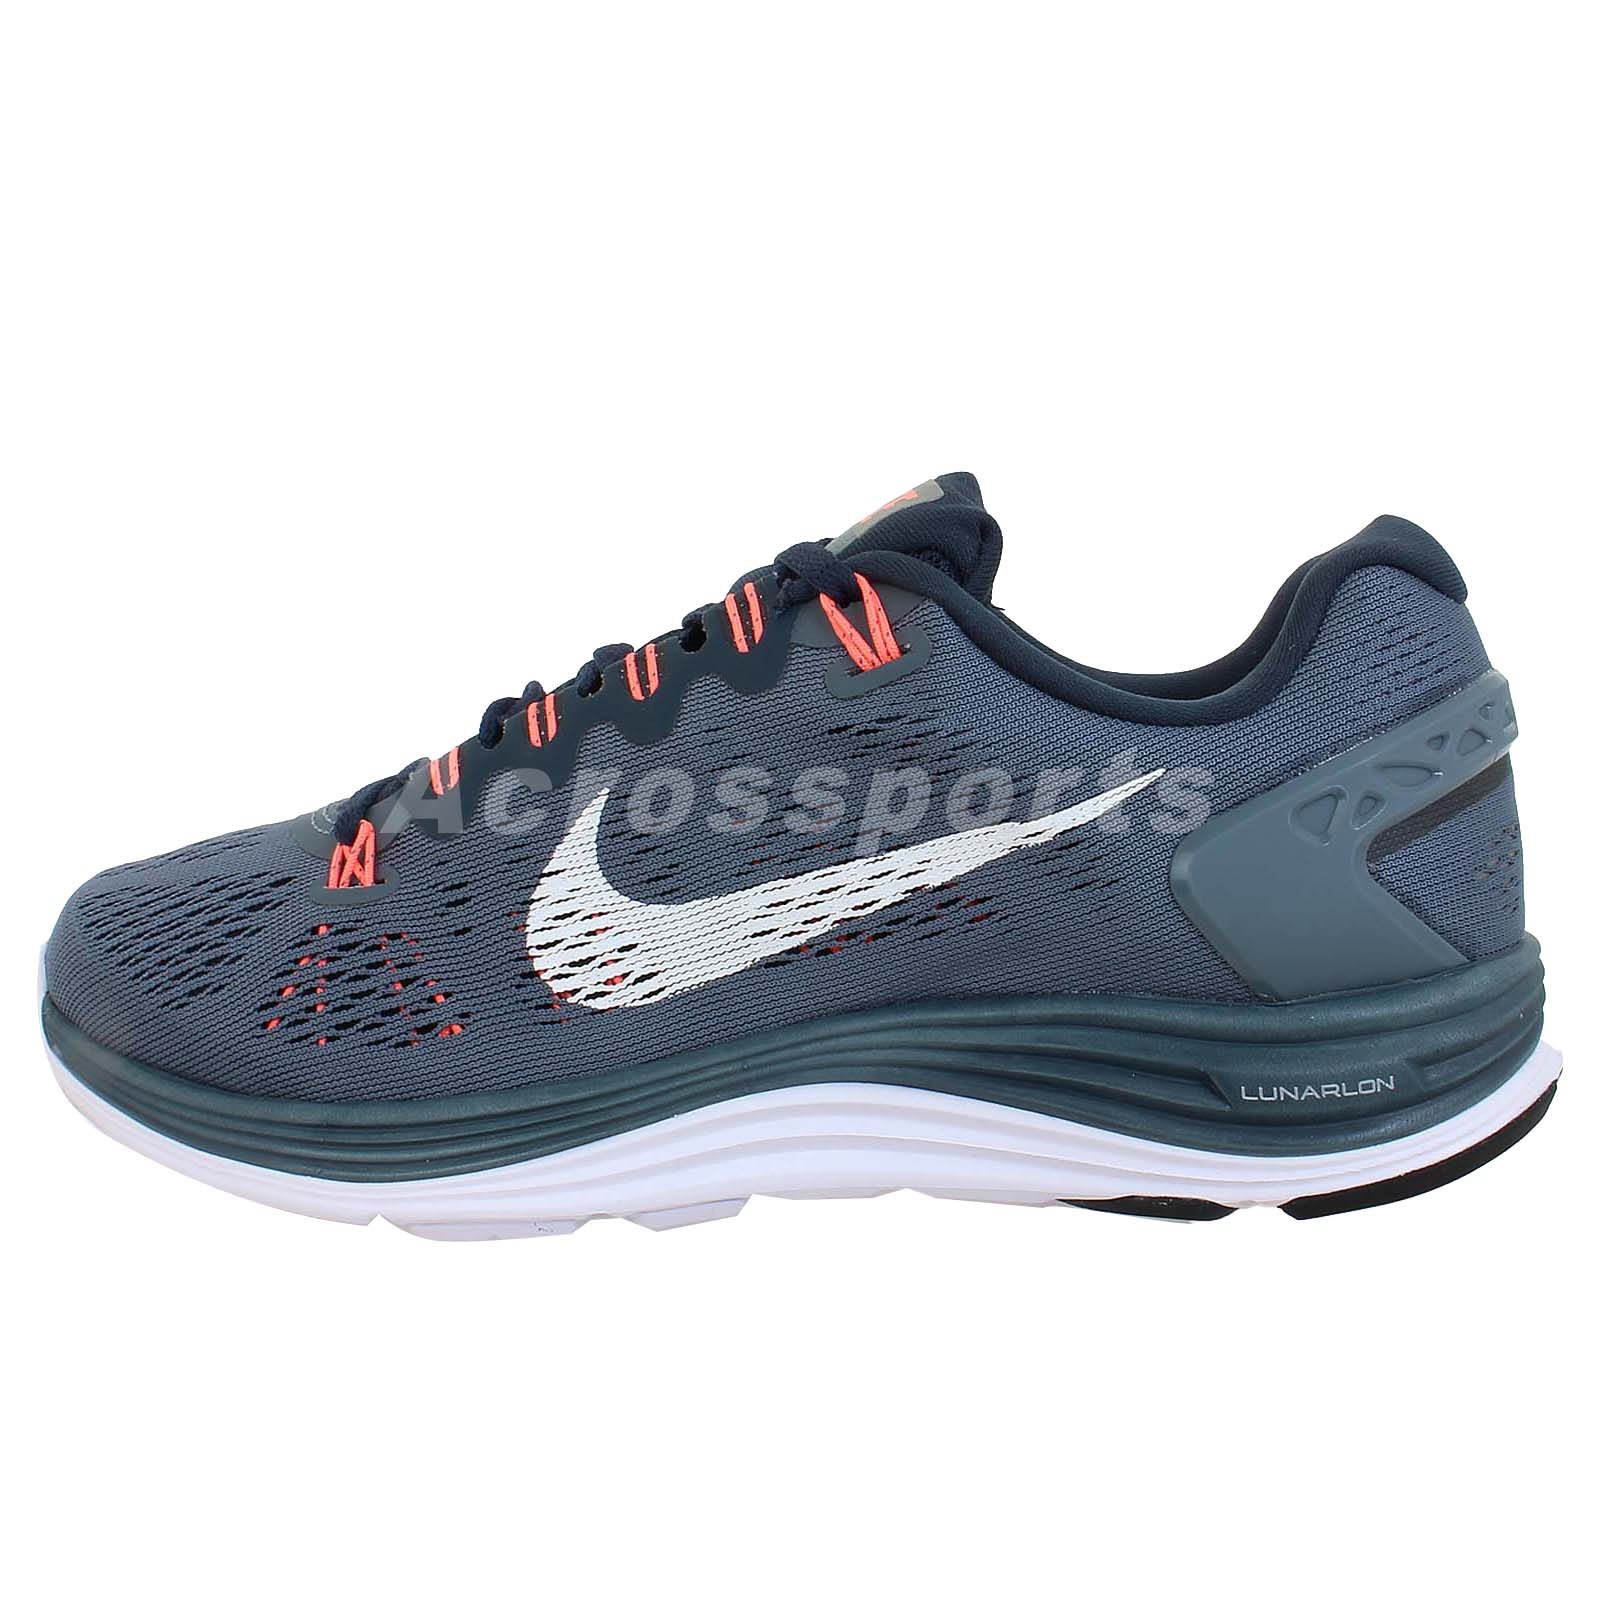 Wonderful Show Off Your Trendy Style When You Put On The Nike Womens Akamai Golf Shoes Crafted With Nikes Signature Lunarlon Cushioning, Feel Assured You Will Have Lightweight Comfort And Support All Round The Cushioning Evenly